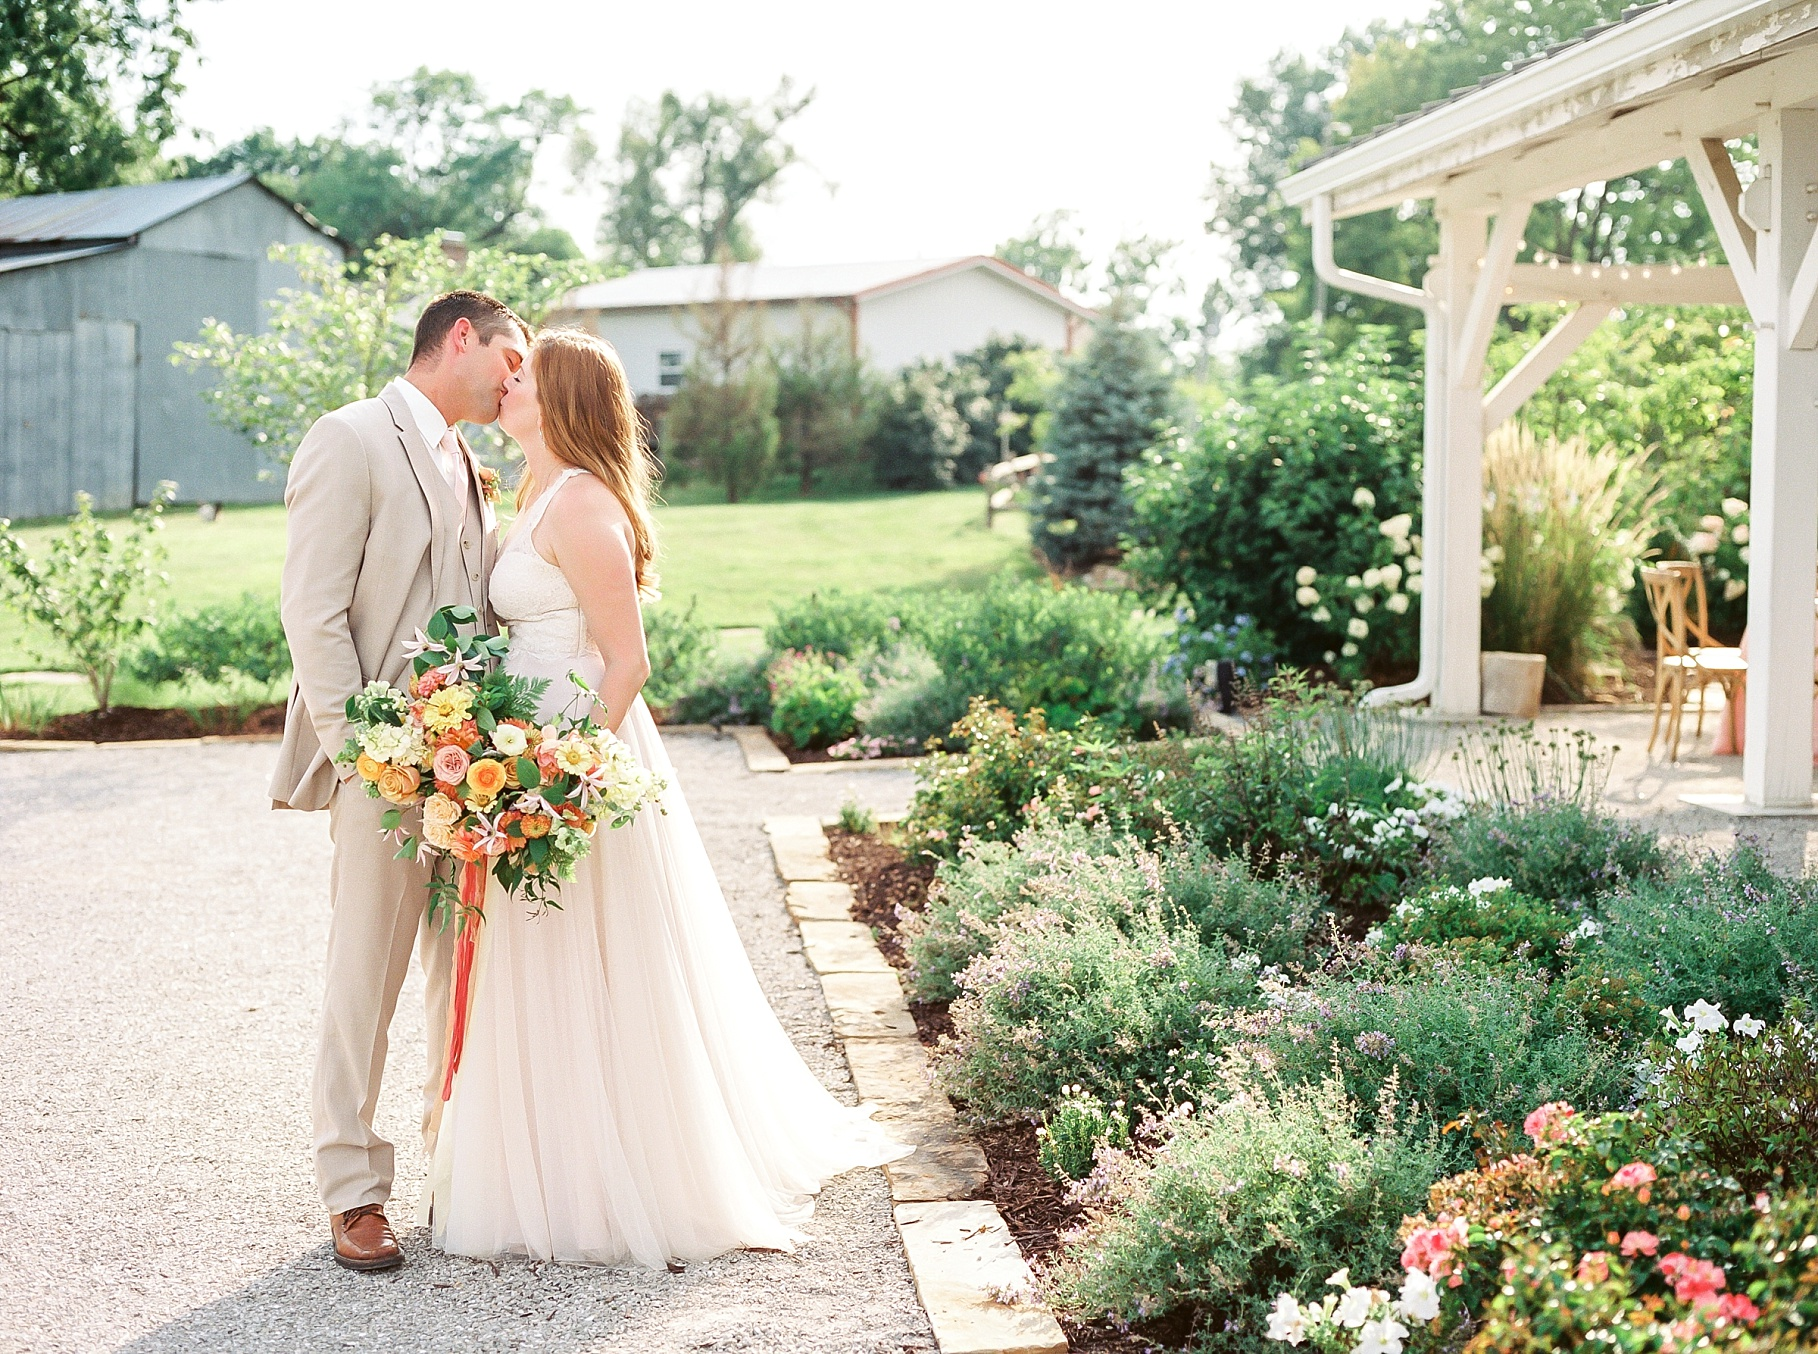 Late Summer Wedding With Pastel Toned Soiree at Blue Bell Farm by Kelsi Kliethermes Photography Best Columbia Missouri Wedding Photographer_0009.jpg